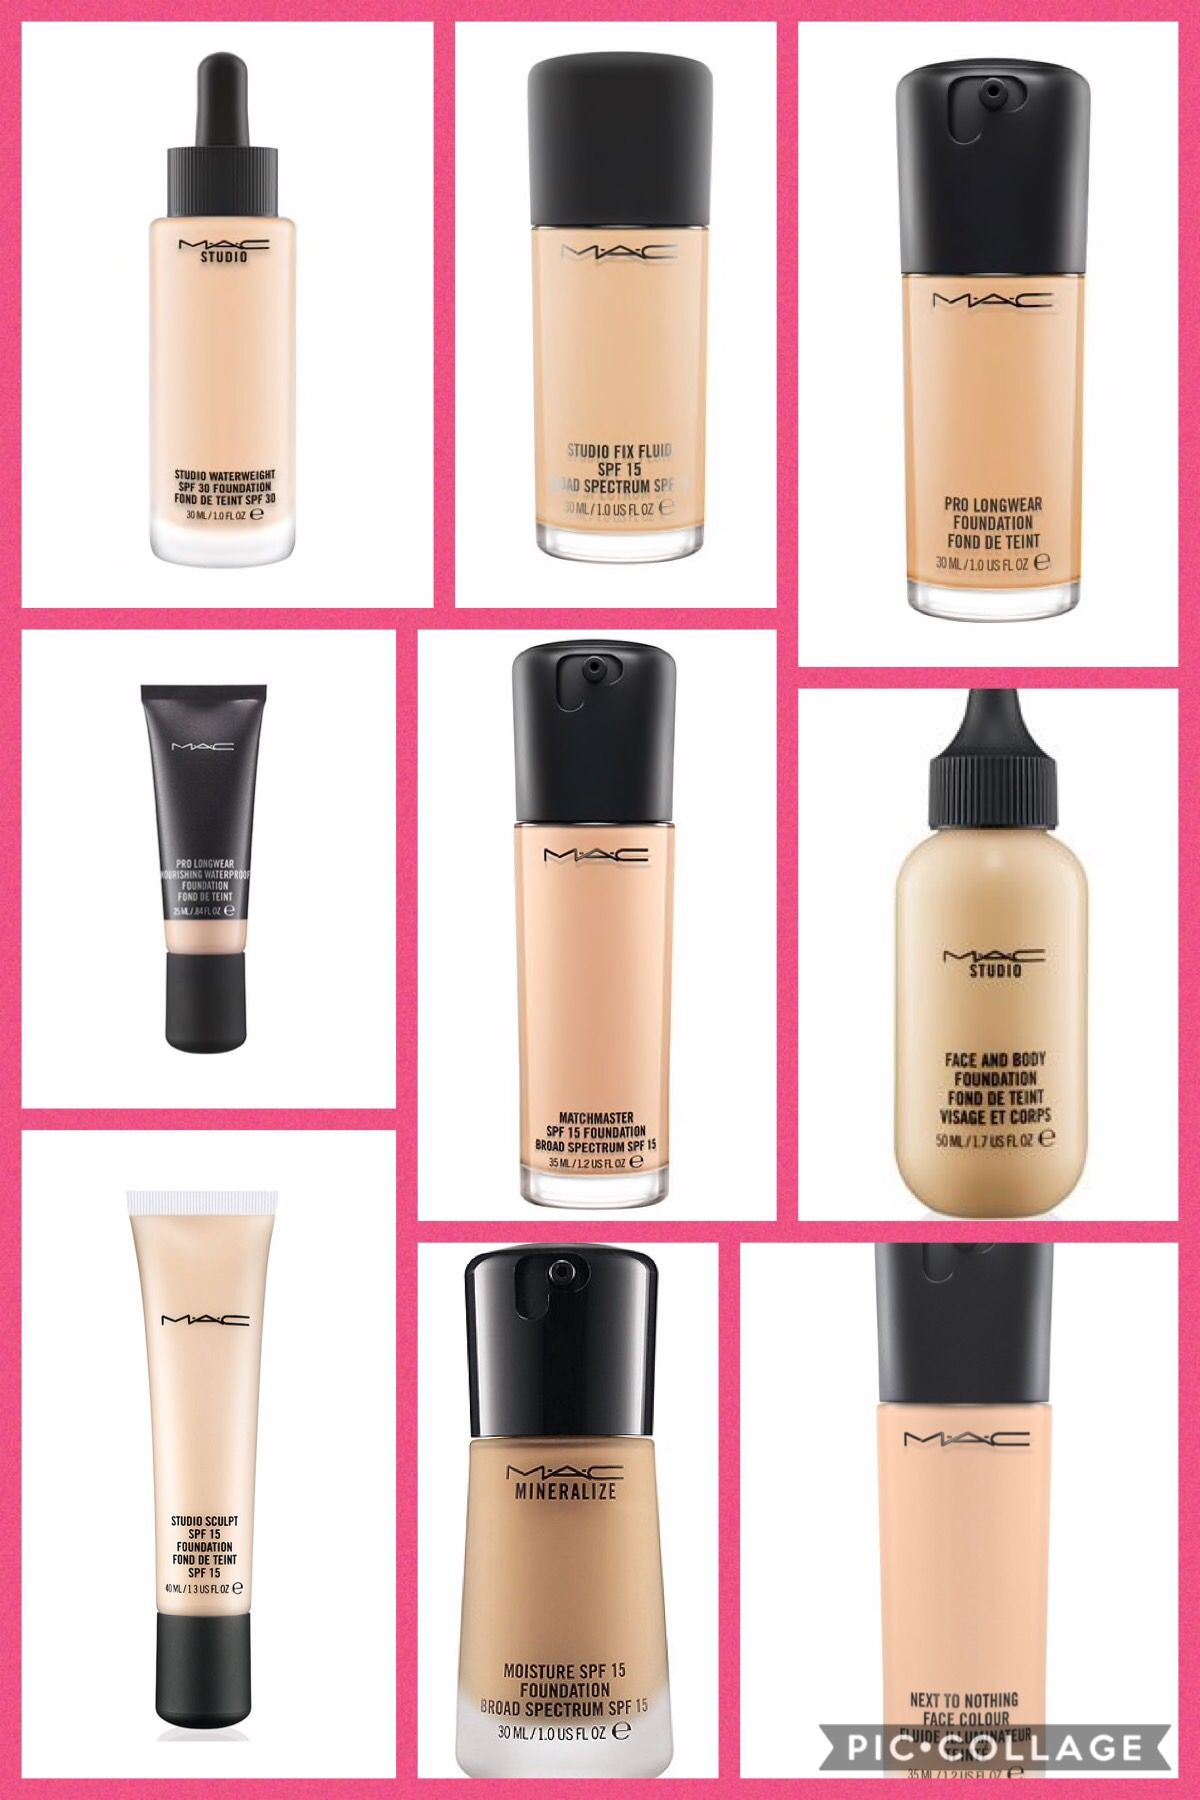 mac foundations Mac makeup foundation, Mac makeup